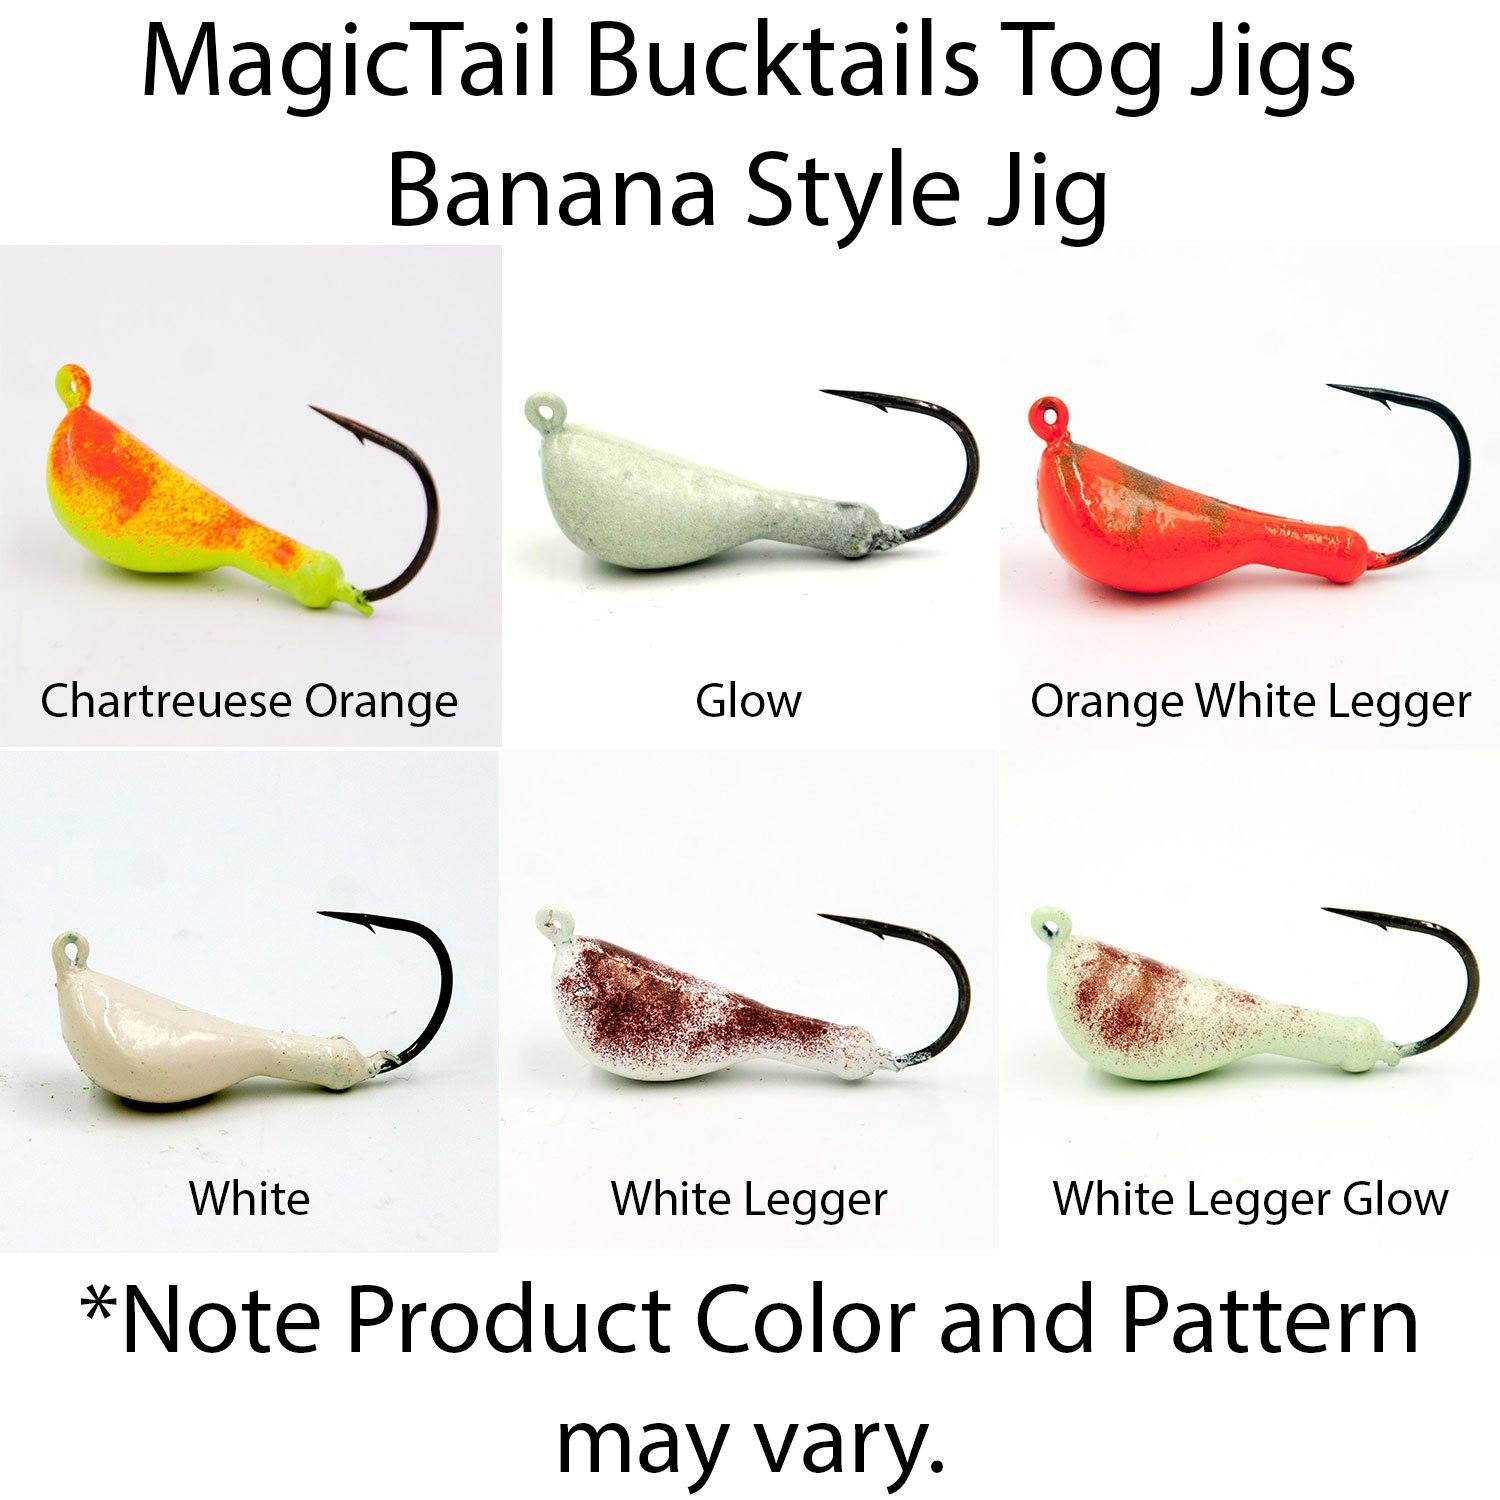 MagicTail Mojo Replacement Mega Shad Body 9 inch 3 Oz.